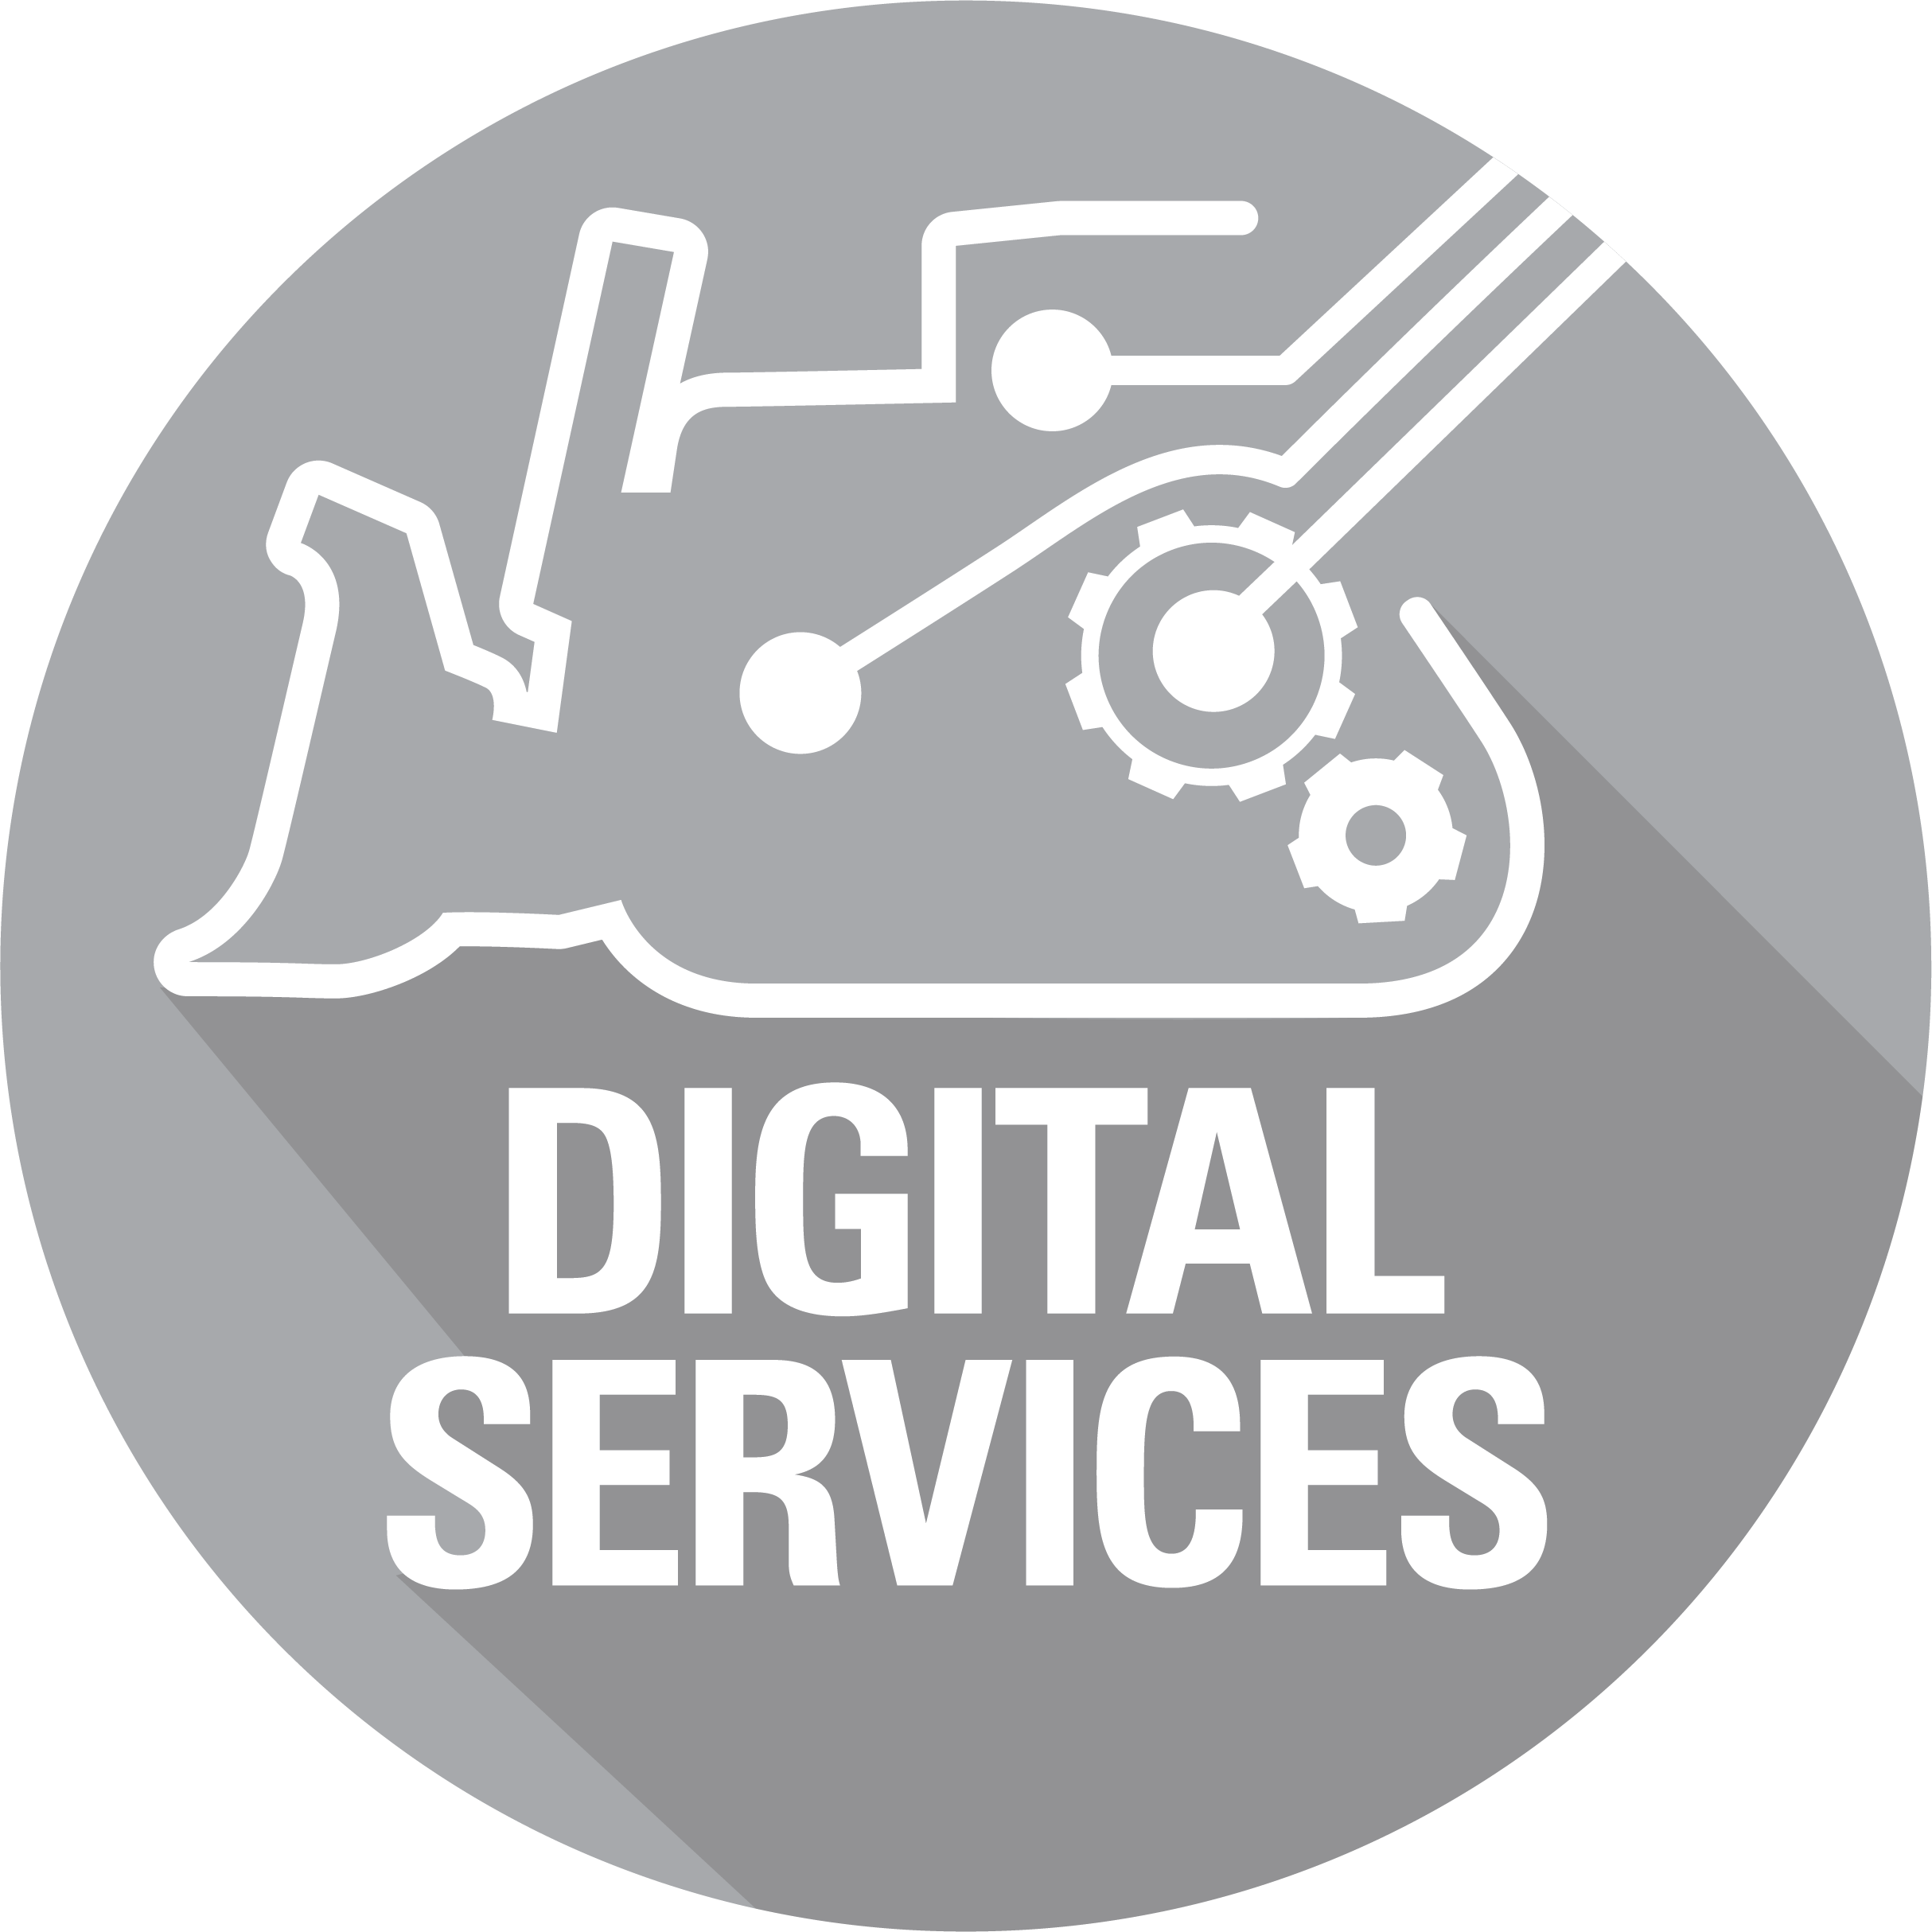 Digital Services's thumbnail image'